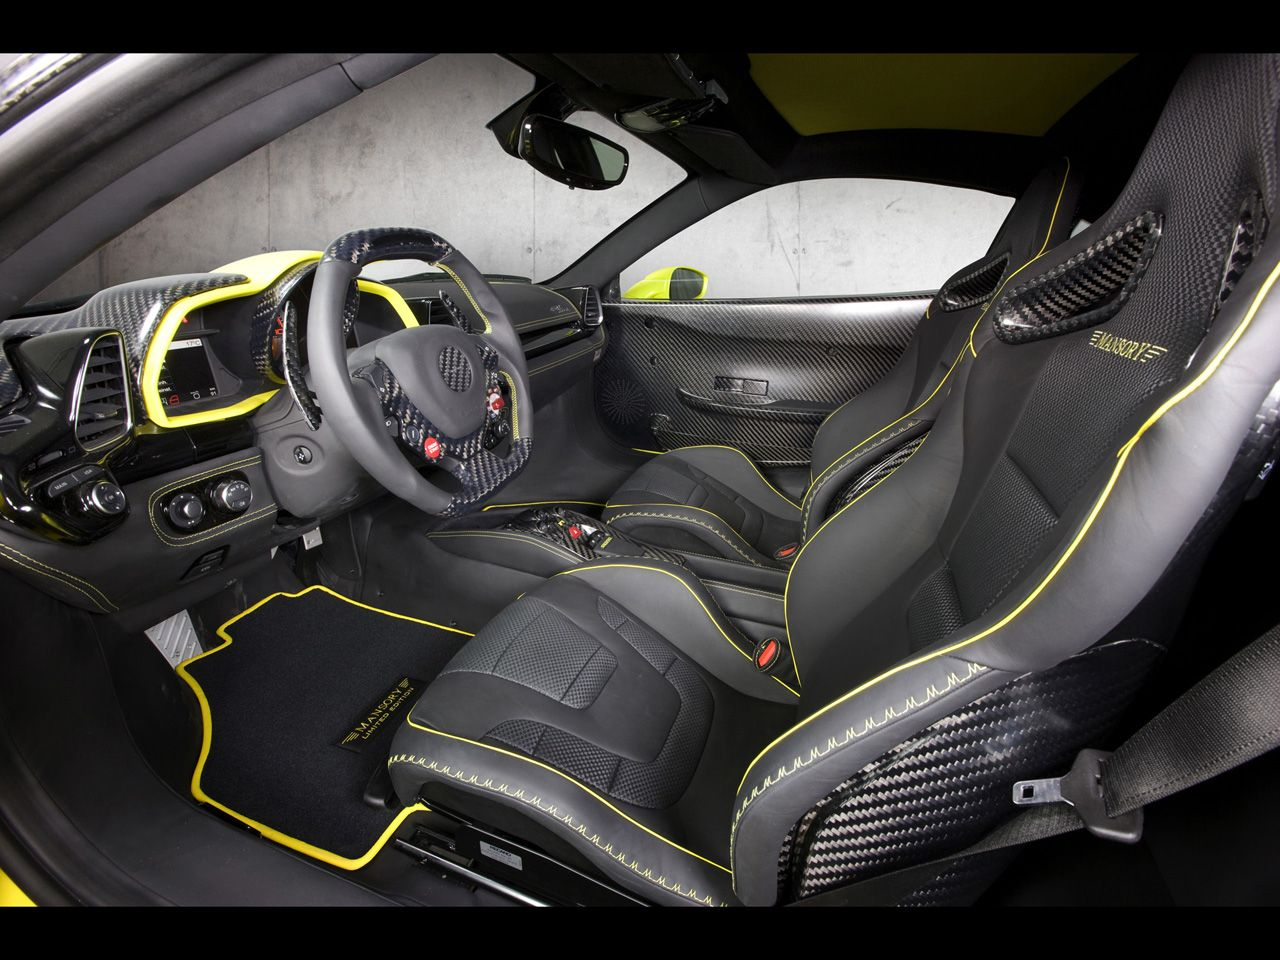 Ferrari 458 Italia Black And Yellow Interior And Carbon Fiber